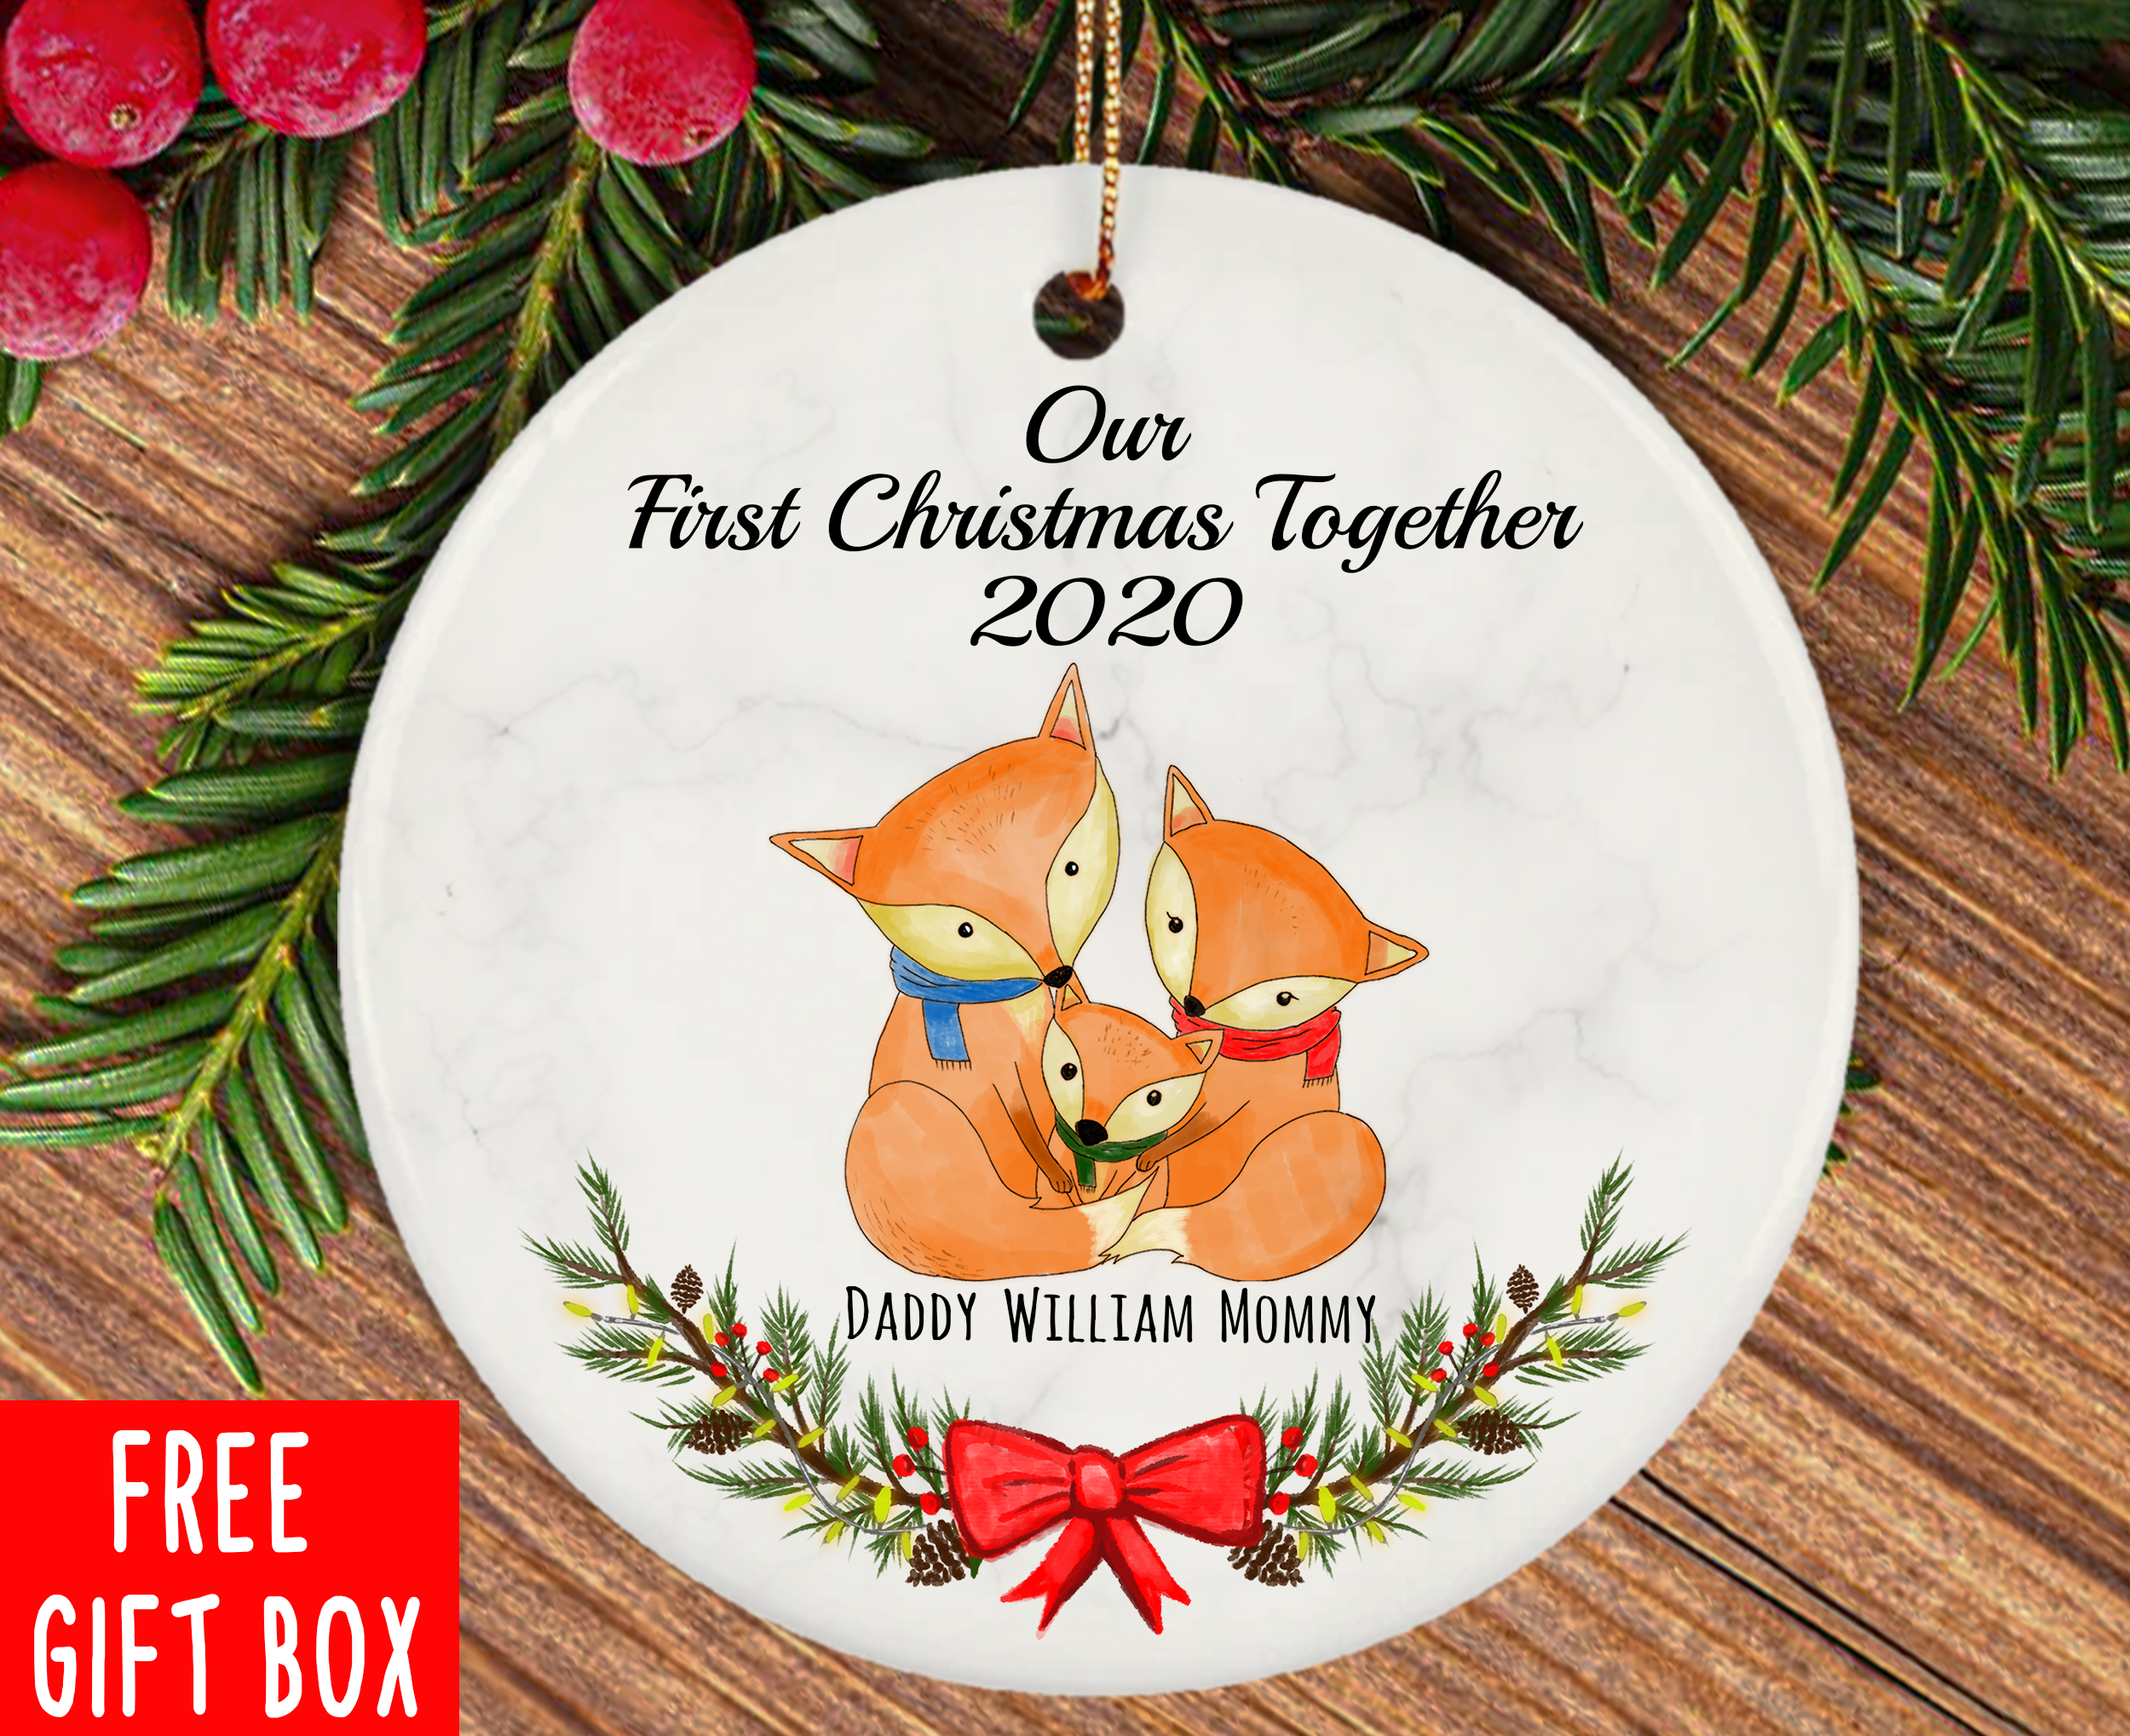 Personalized New Family Ornament Our First Christmas Together Etsy Baby Christmas Gifts Baby S First Christmas Gifts Our First Christmas Ornament